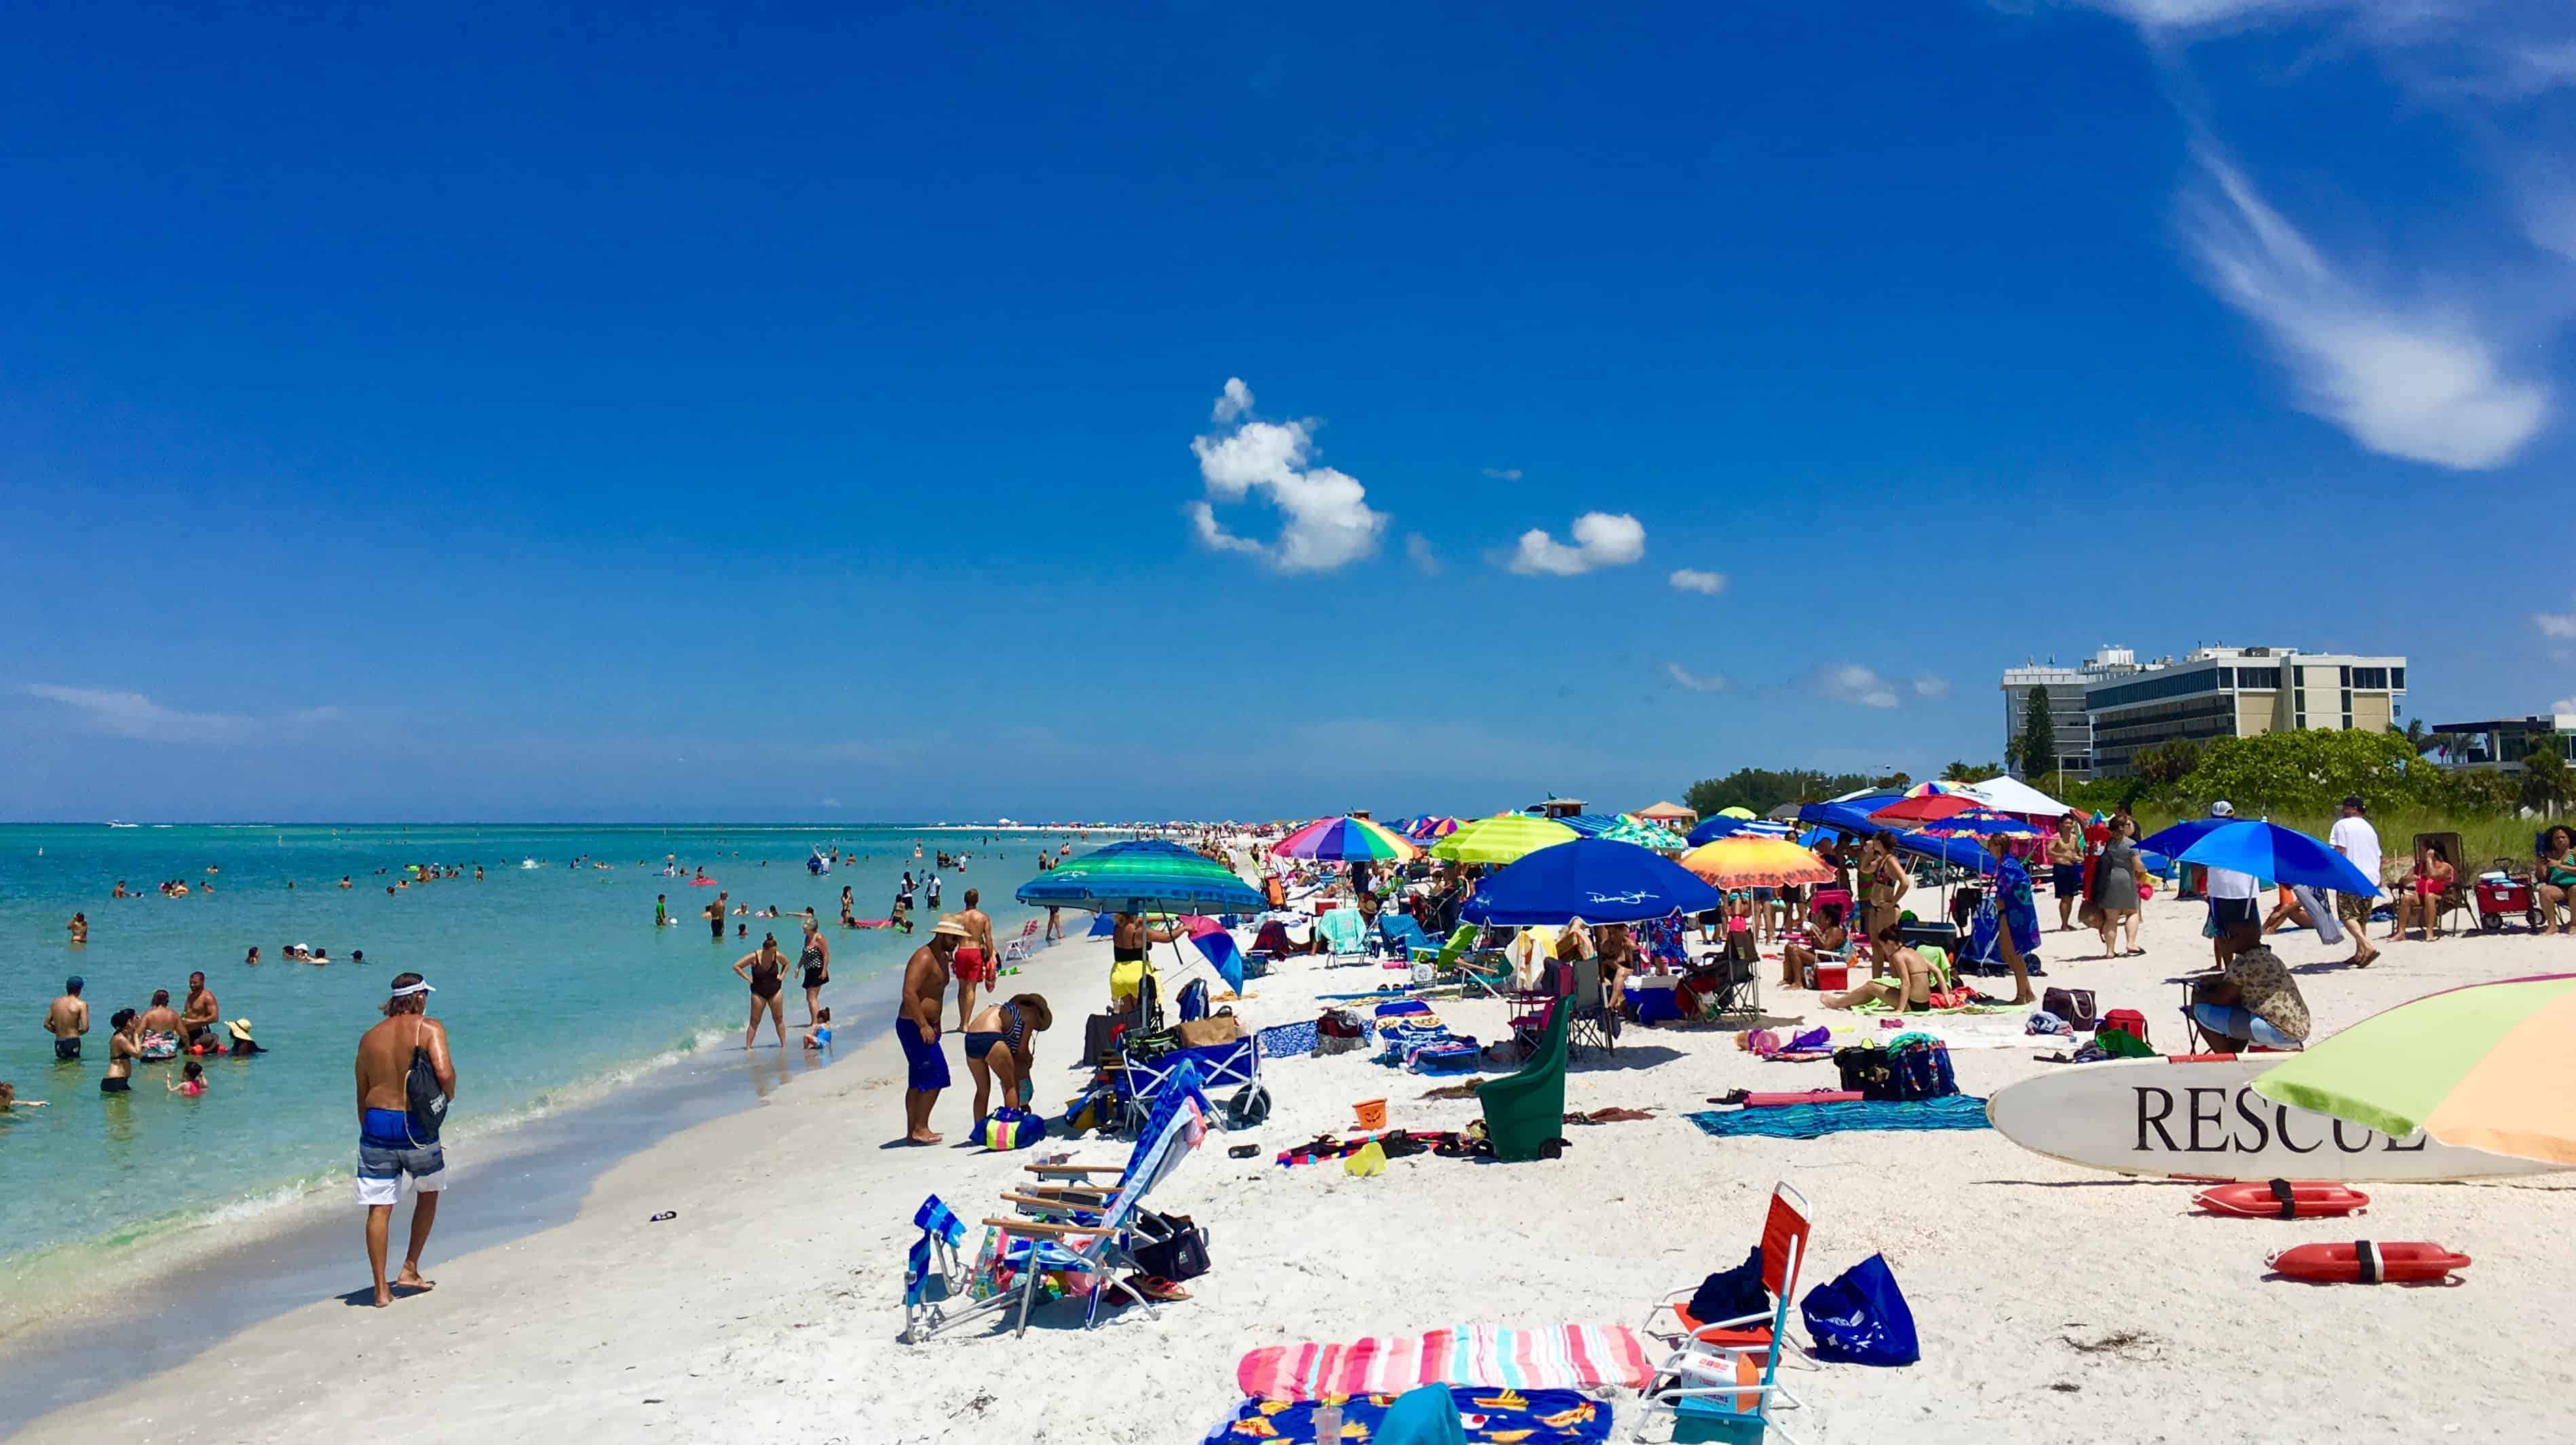 7 Reasons To Visit Sarasota - Home of the #1 Beach in the U.S.A., there's something for everyone here! | Tastefulventure.com made in partnership with @creditcards.com #CreditCardWin #sponsored